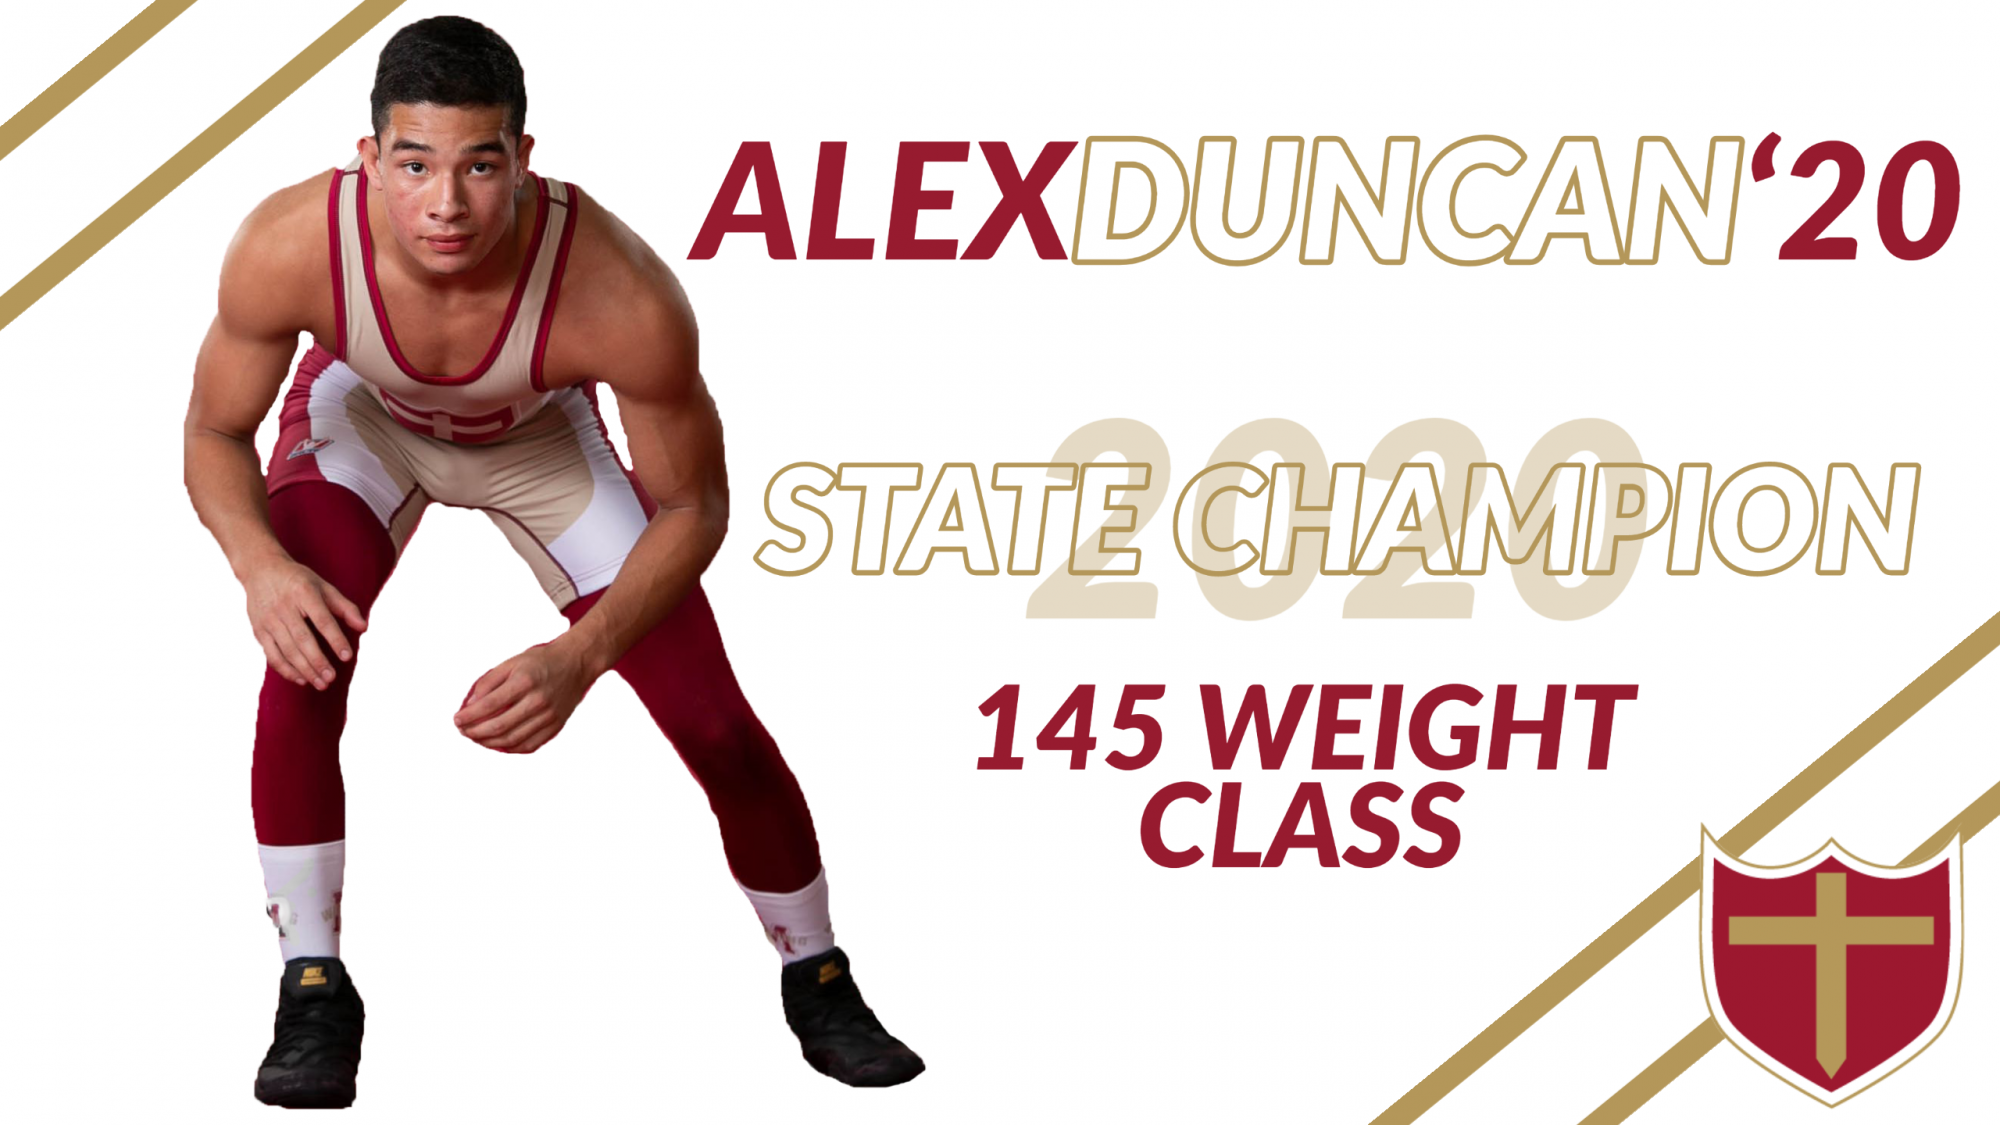 Alex Duncan '20 State Champ